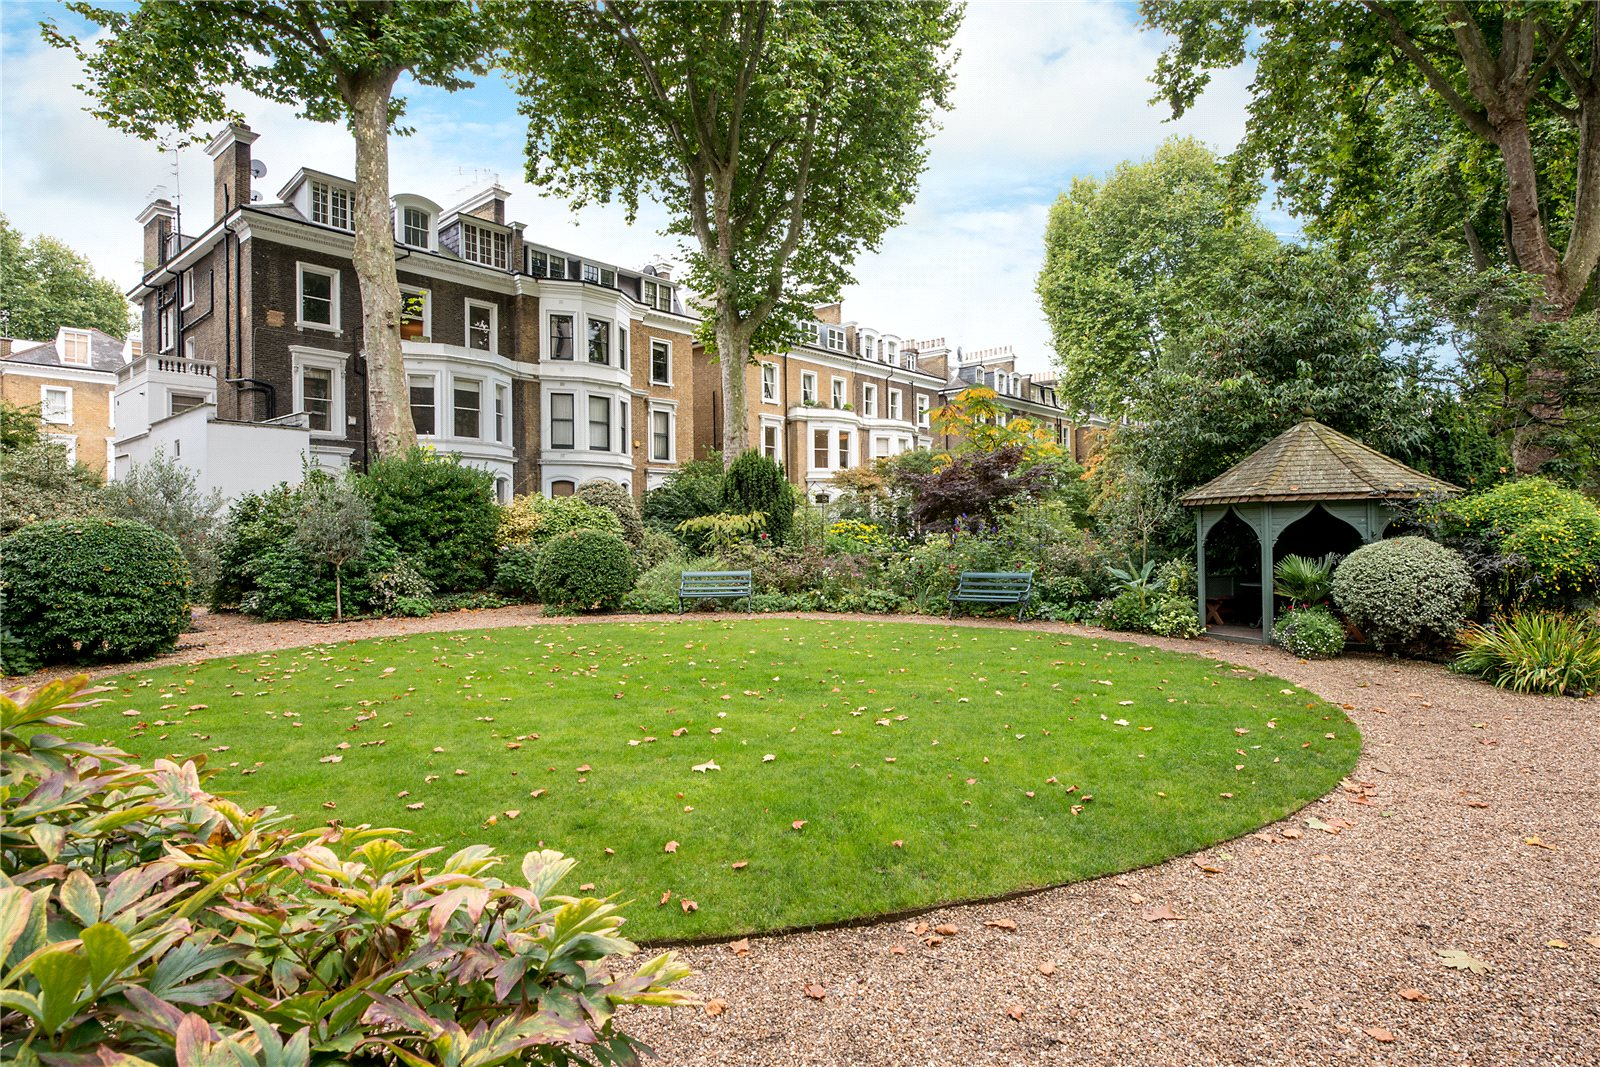 Additional photo for property listing at Wetherby Gardens, South Kensington, London, SW5 South Kensington, London, Anh Quốc